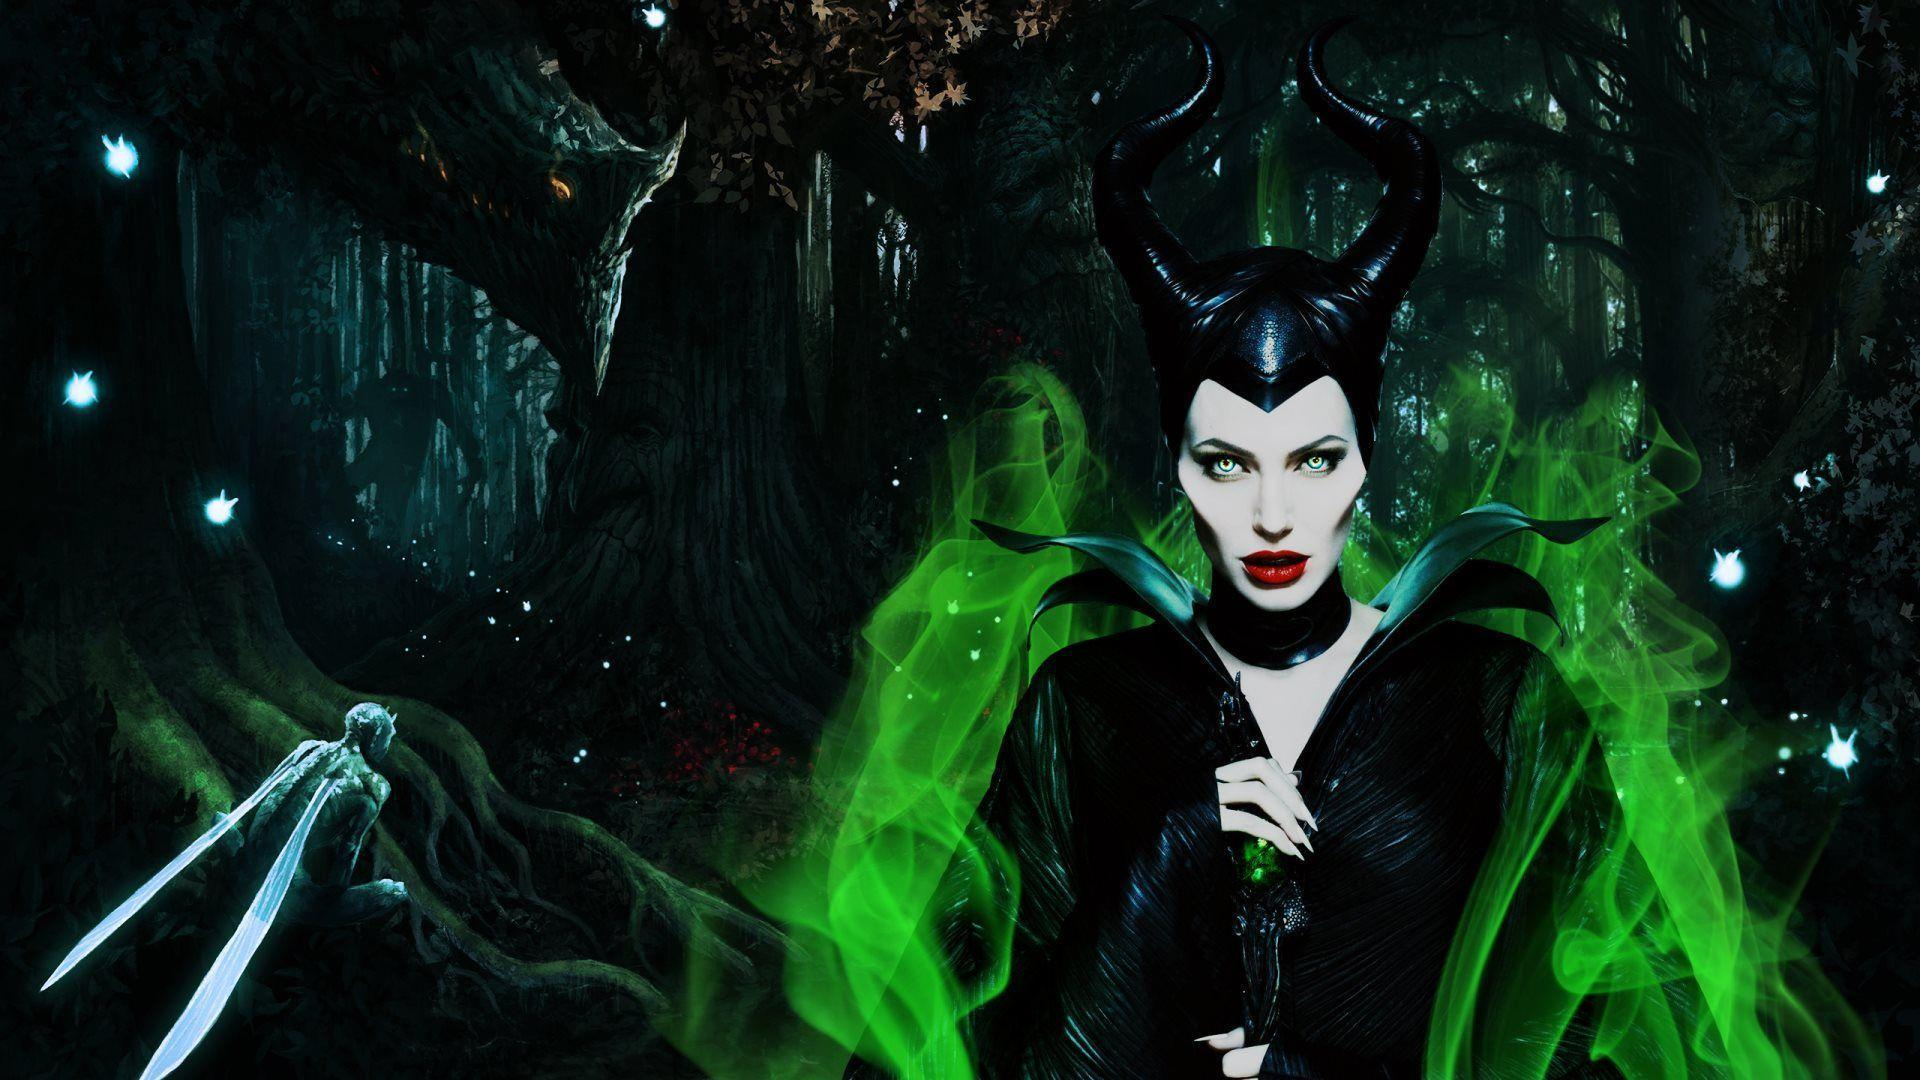 Maleficent Fan Art Wallpapers · 4K HD Desktop Backgrounds Phone Image